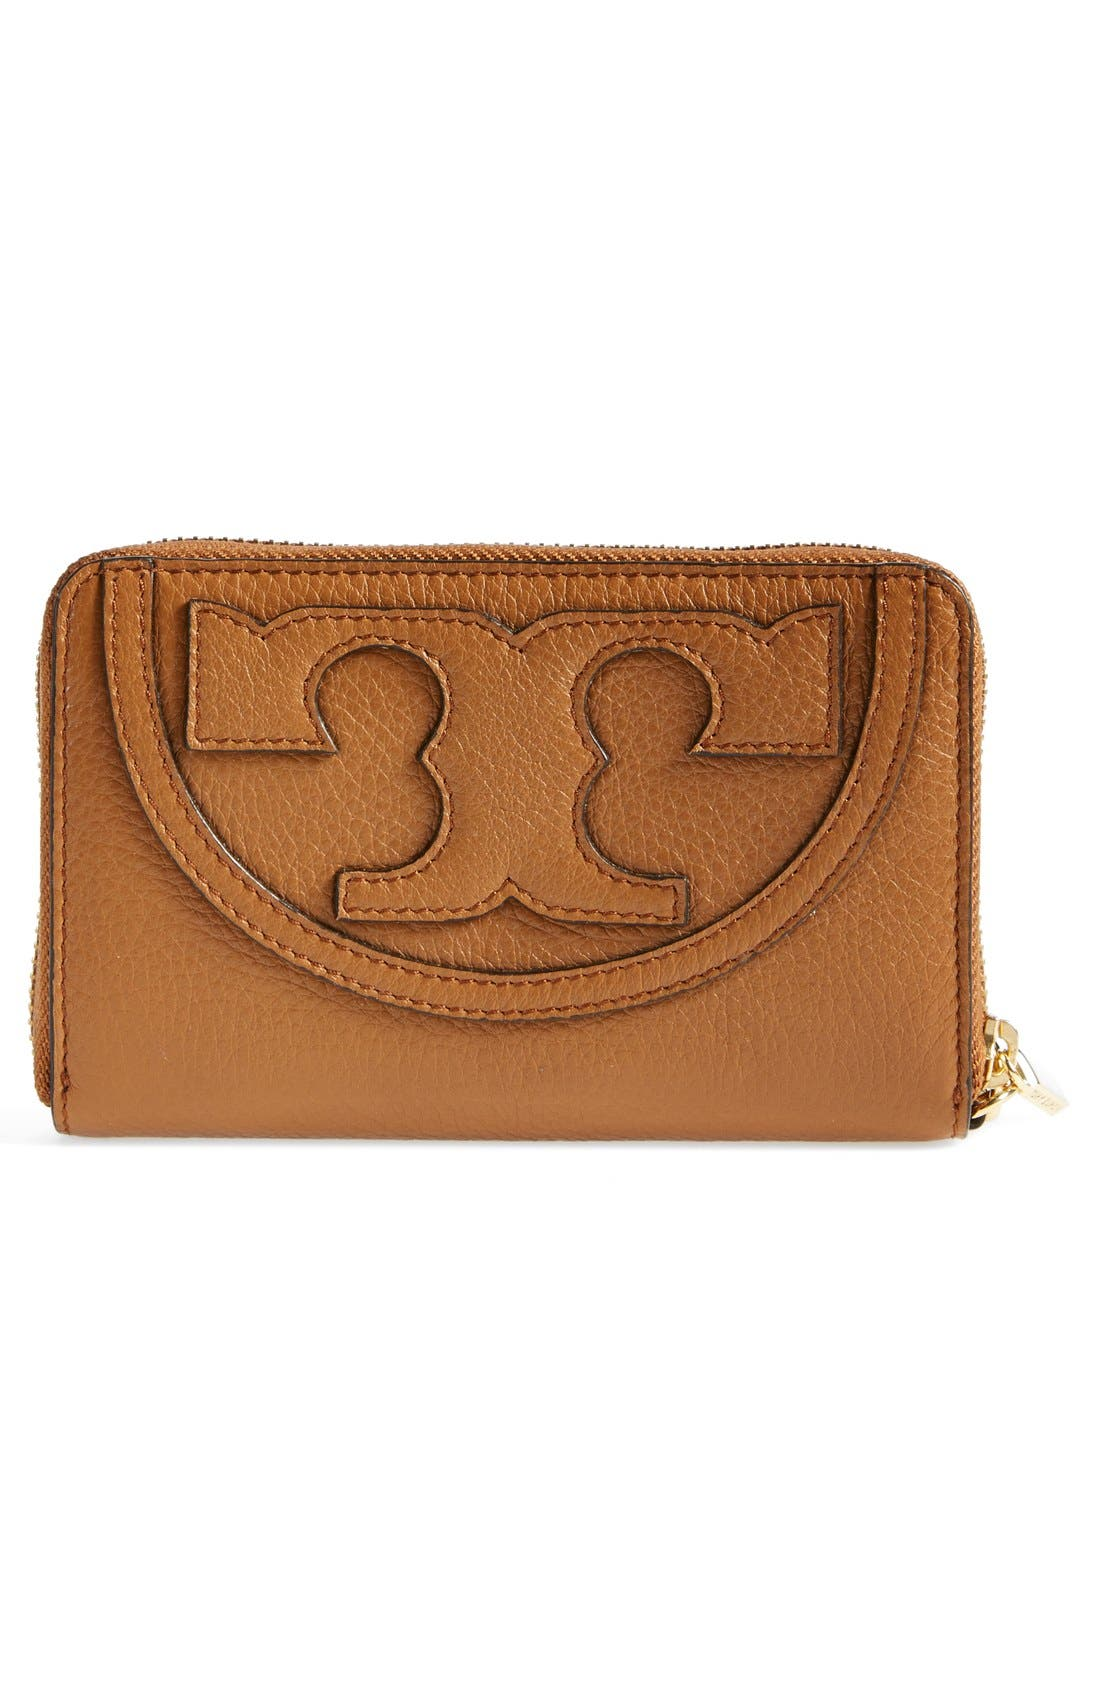 Alternate Image 3  - Tory Burch 'All T' Leather Phone Wallet